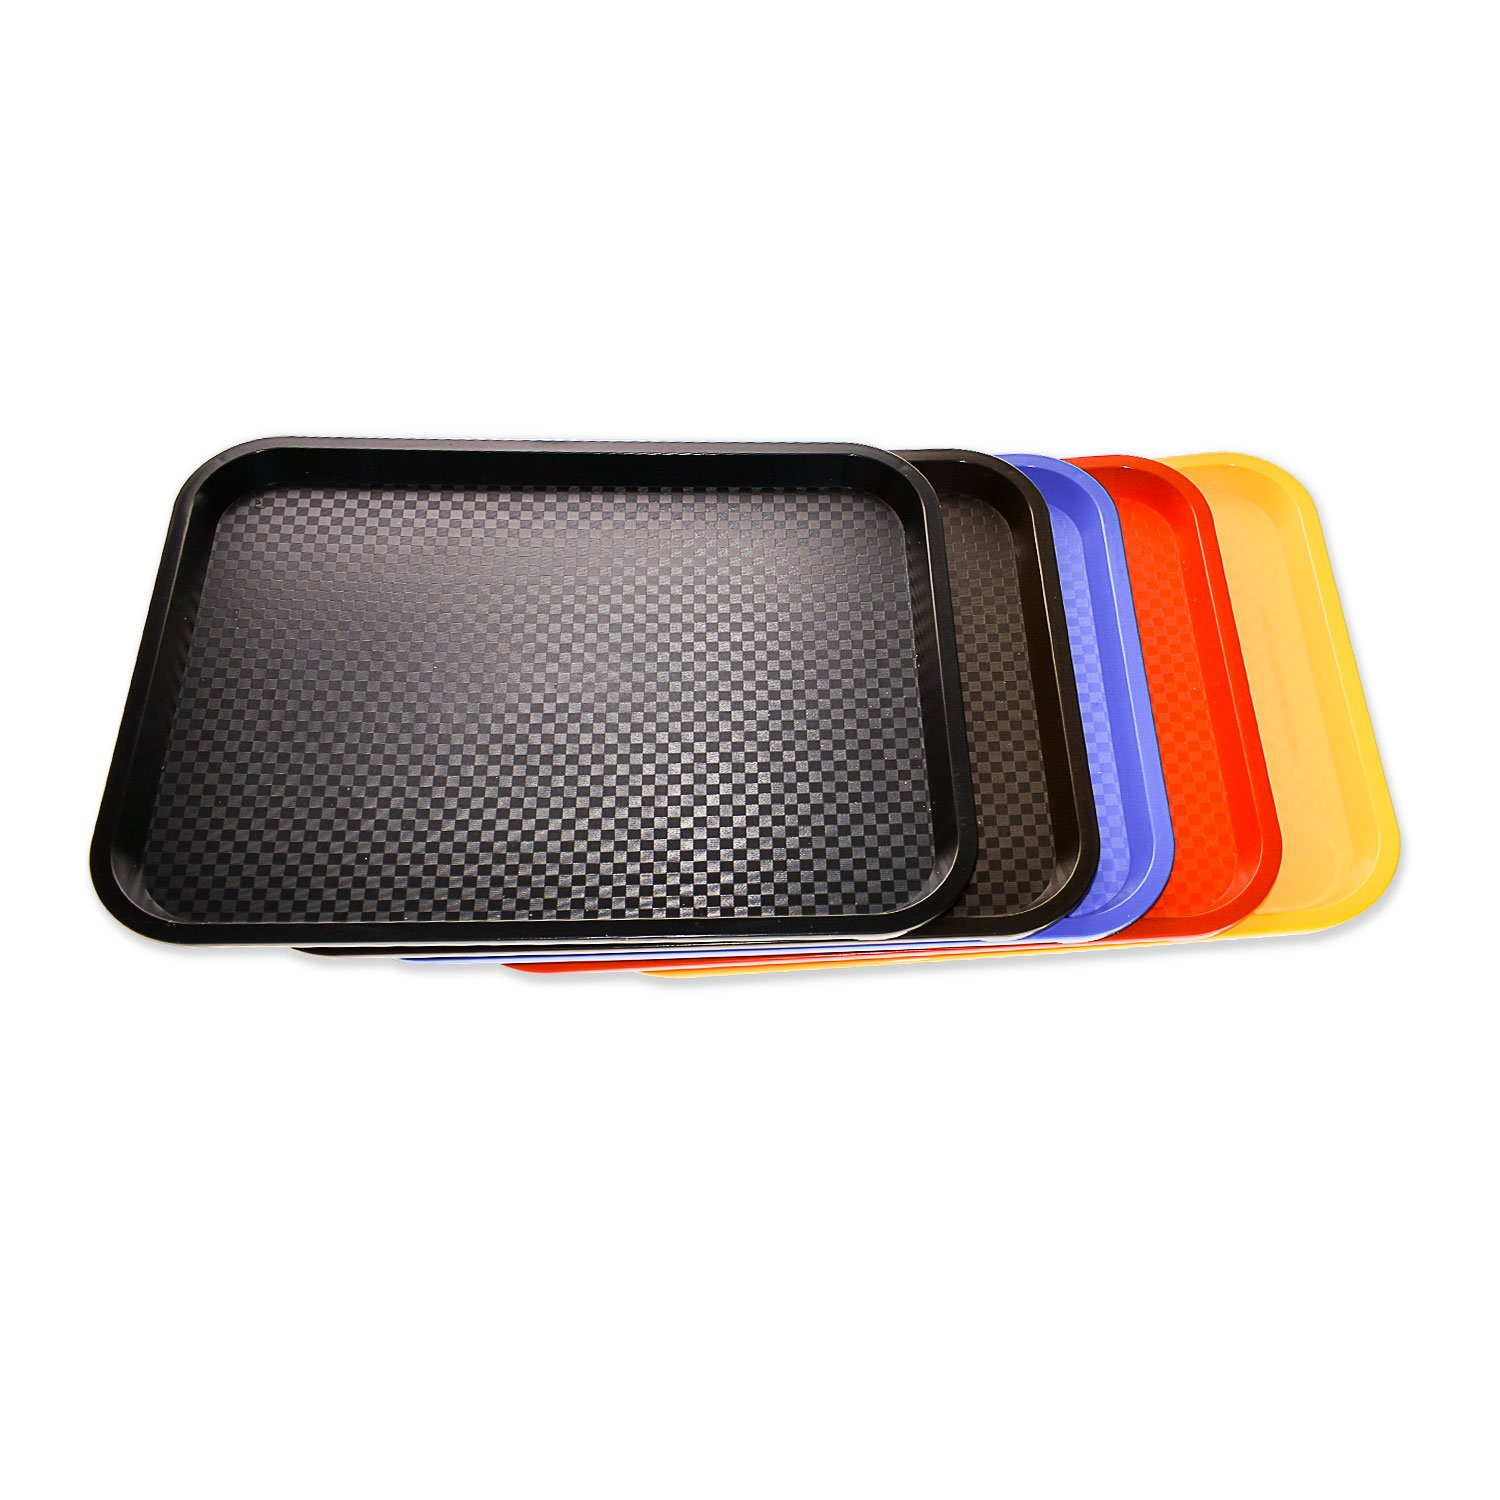 Source One Premium Food Service Tray 12 Inches x 16 Inches Perfect for Cafeterias, Schools, Quick Service Restaurants (2, Blue)